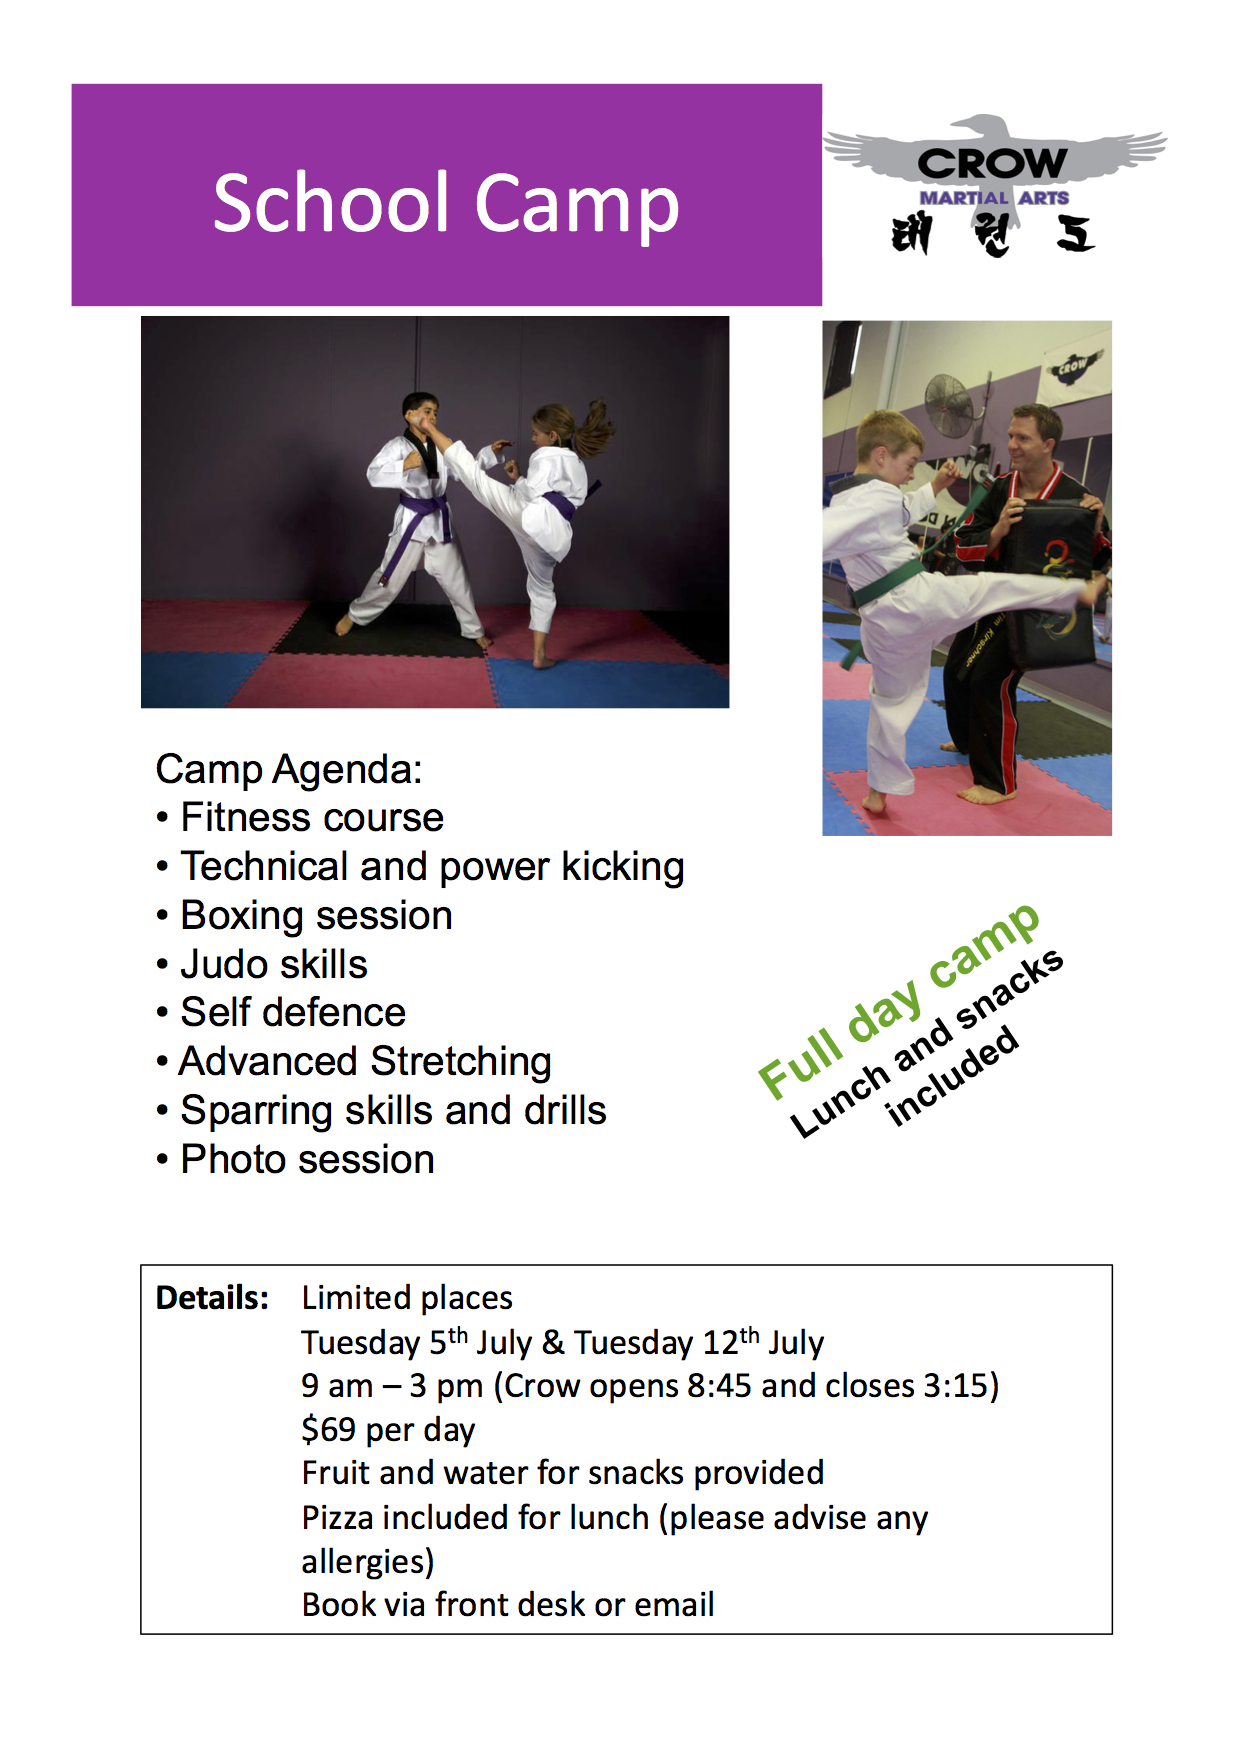 Crow Martial Arts school holiday camp